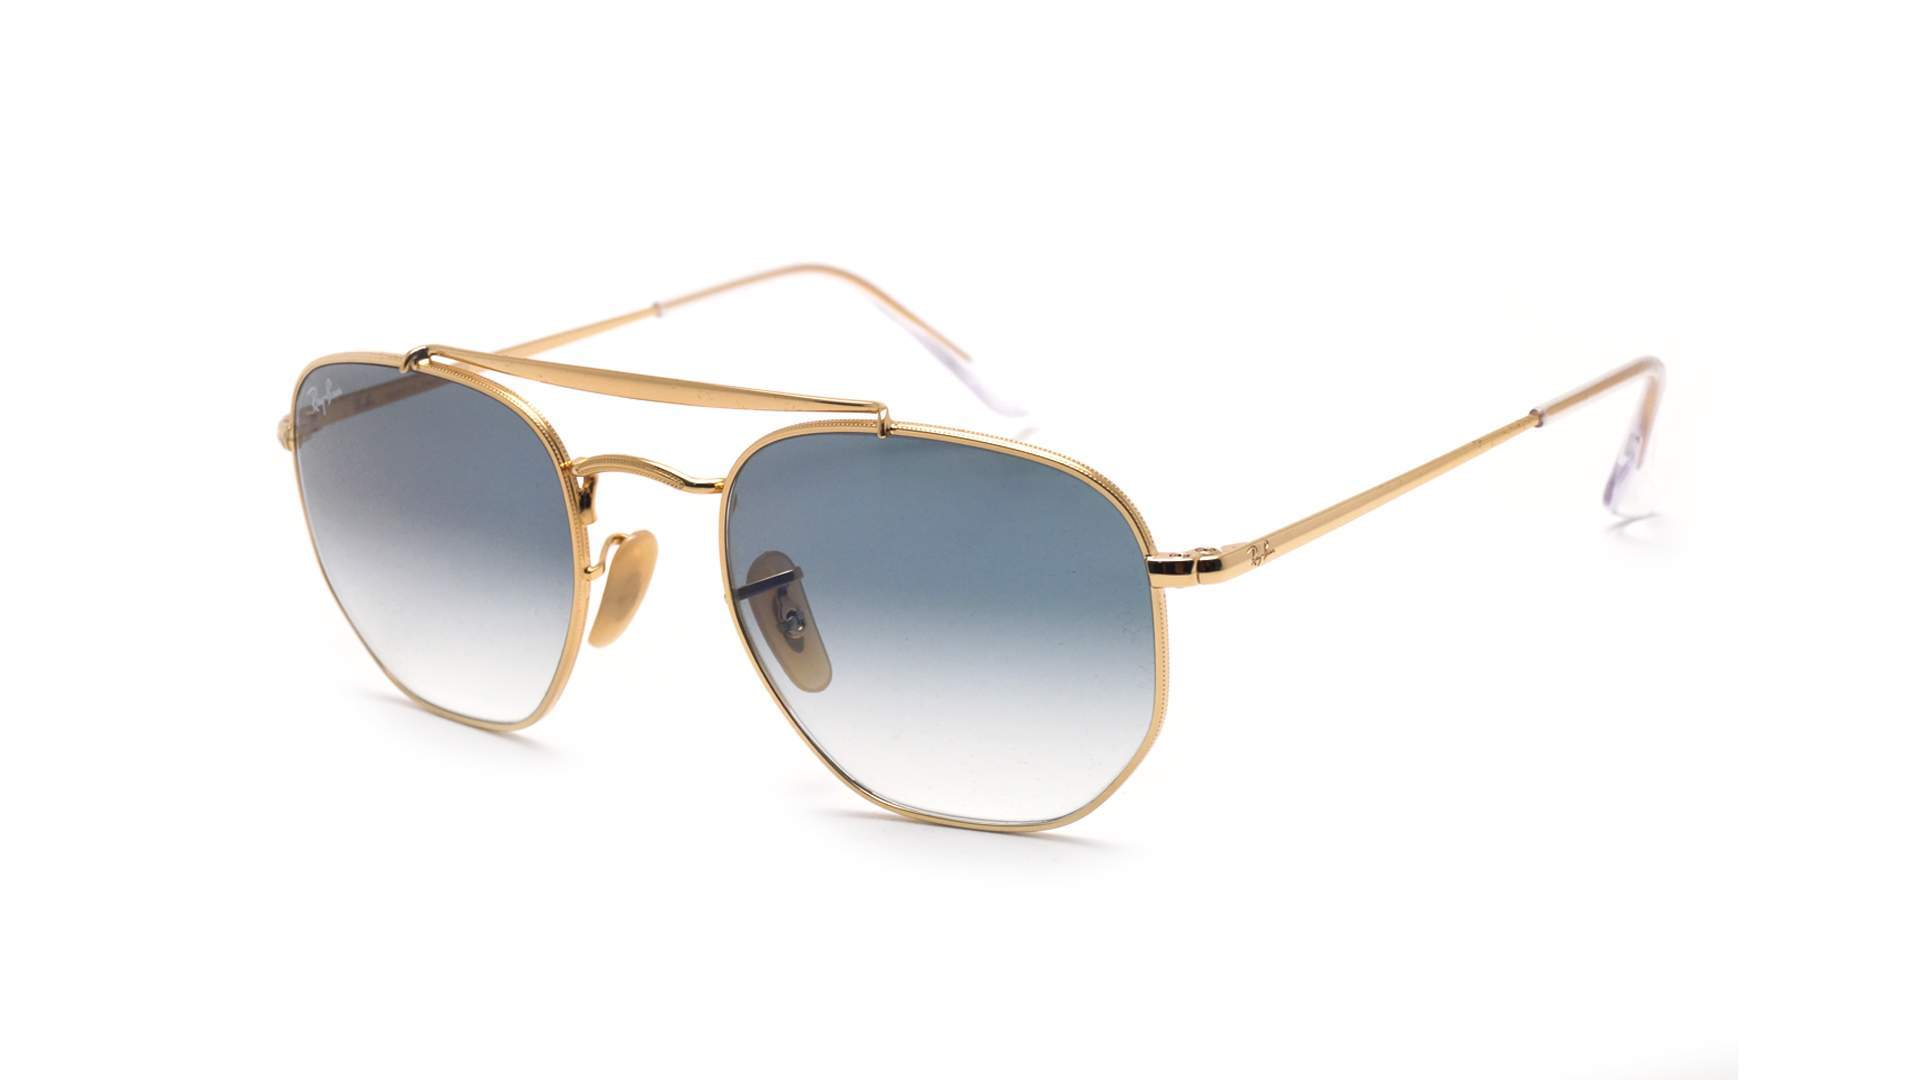 2615e4e6ed Sunglasses Ray-Ban Marshal Gold RB3648 001 3F 54-21 Large Gradient